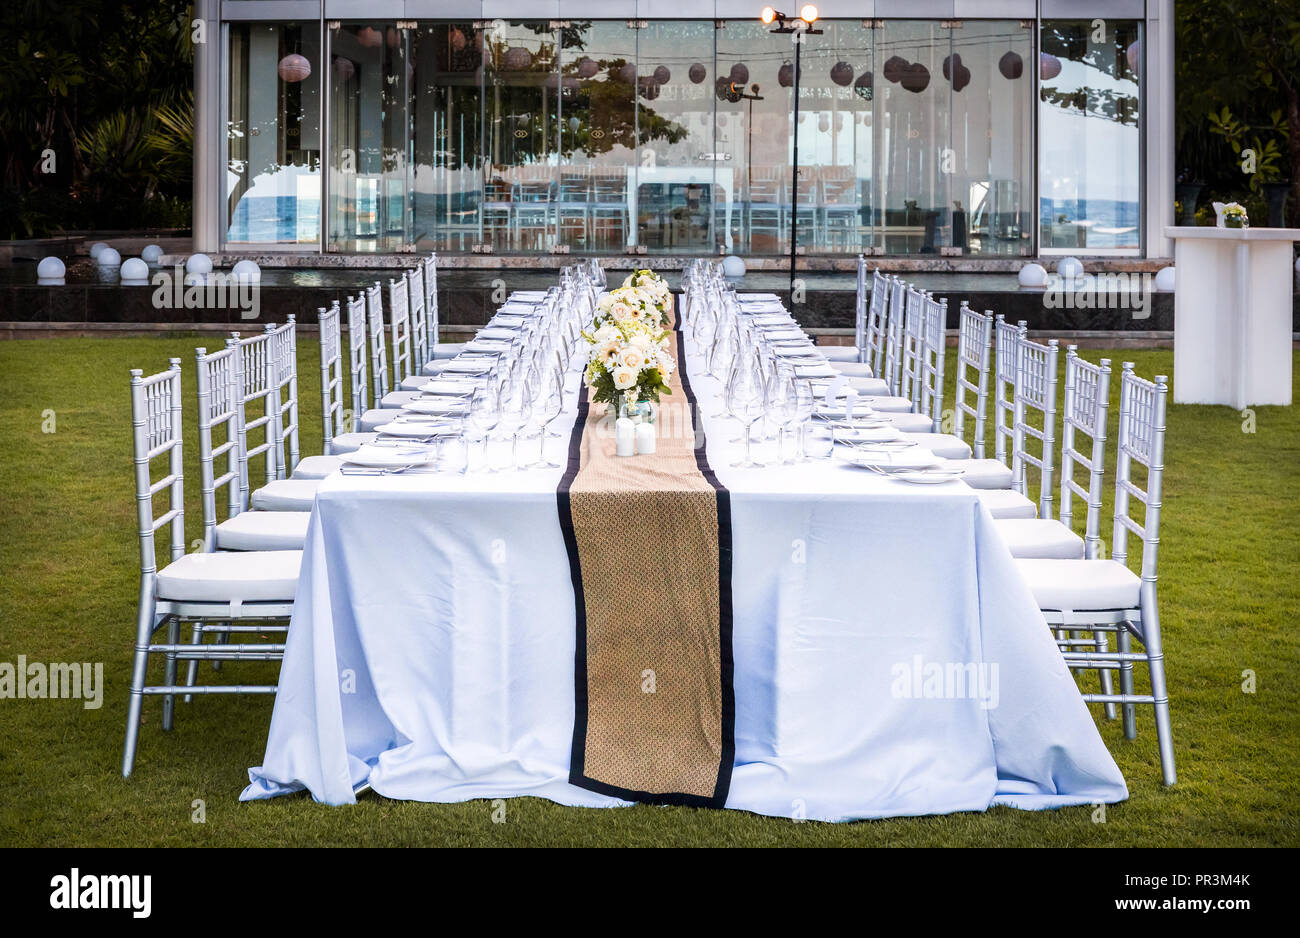 Chairs and table prepared for garden party Stock Photo - Alamy